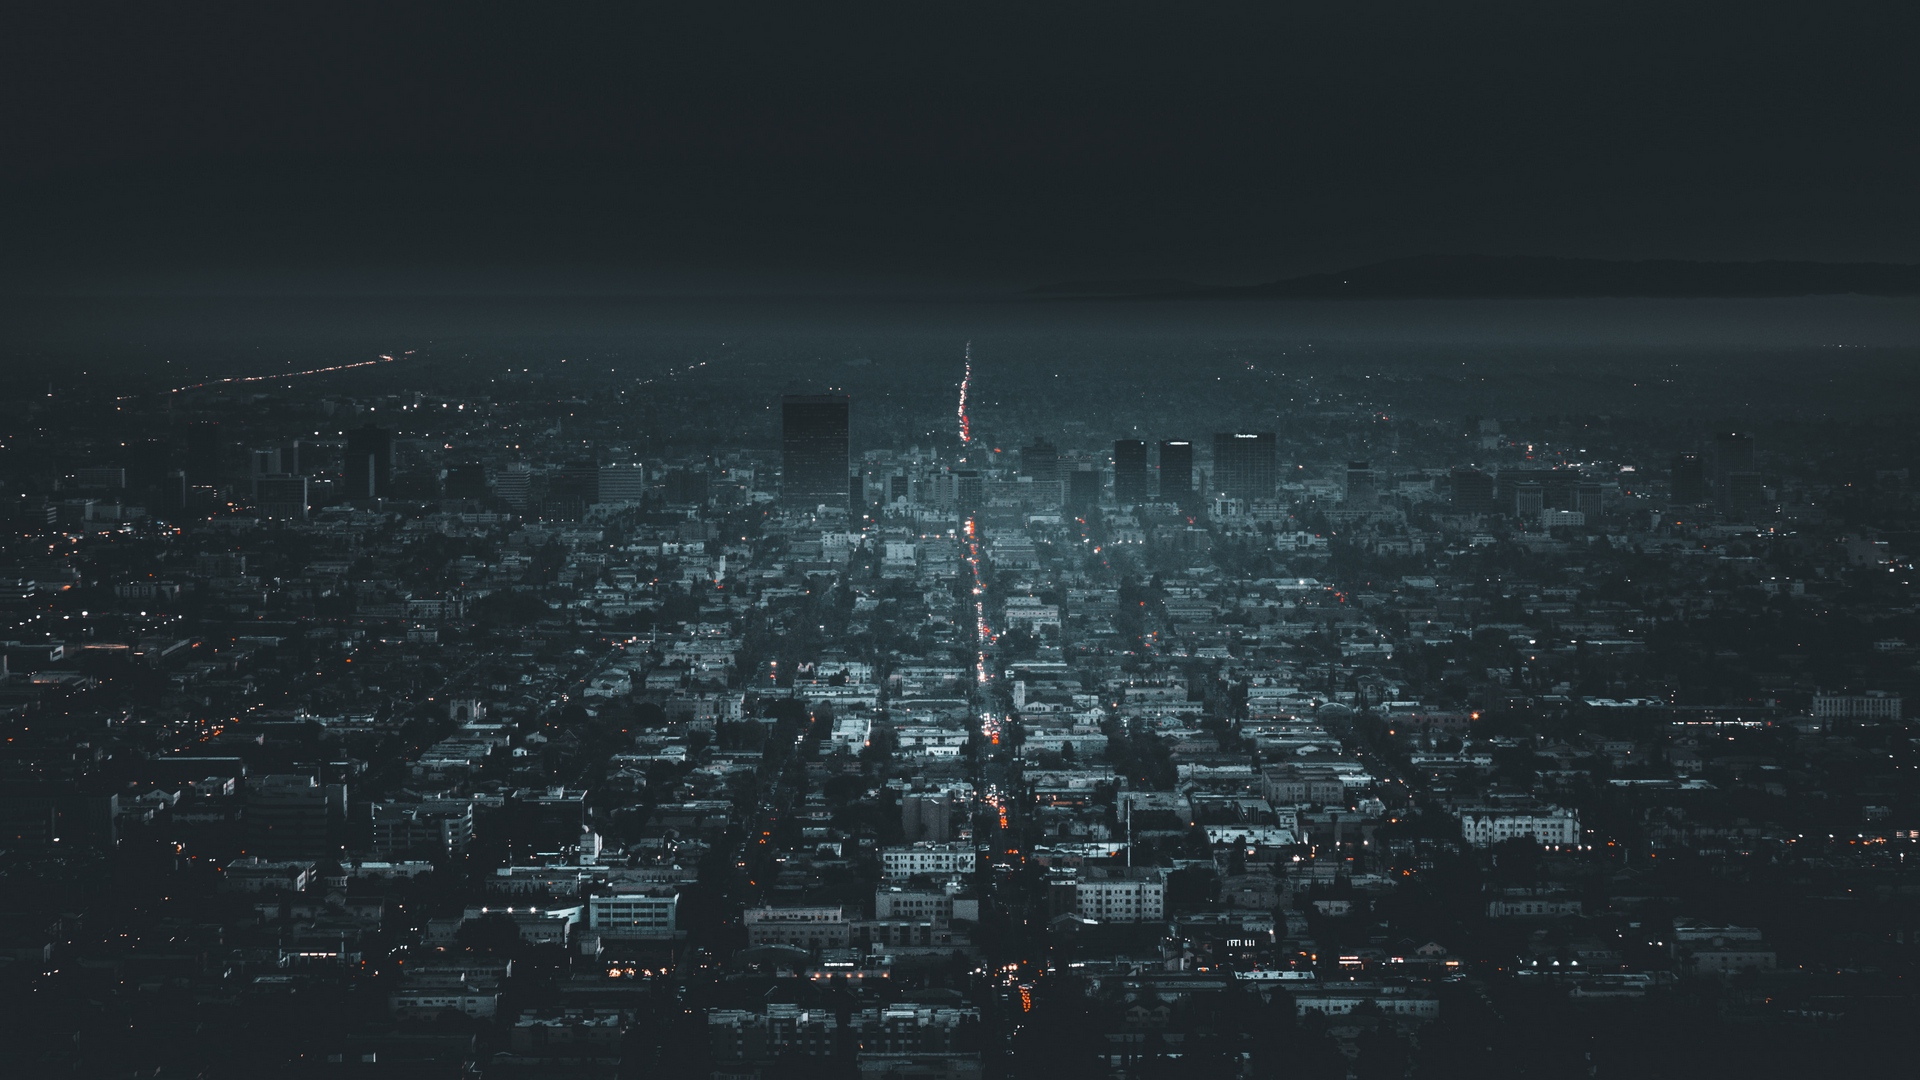 General 1920x1080 city night aerial aerial view lights traffic building cityscape dark California Los Angeles